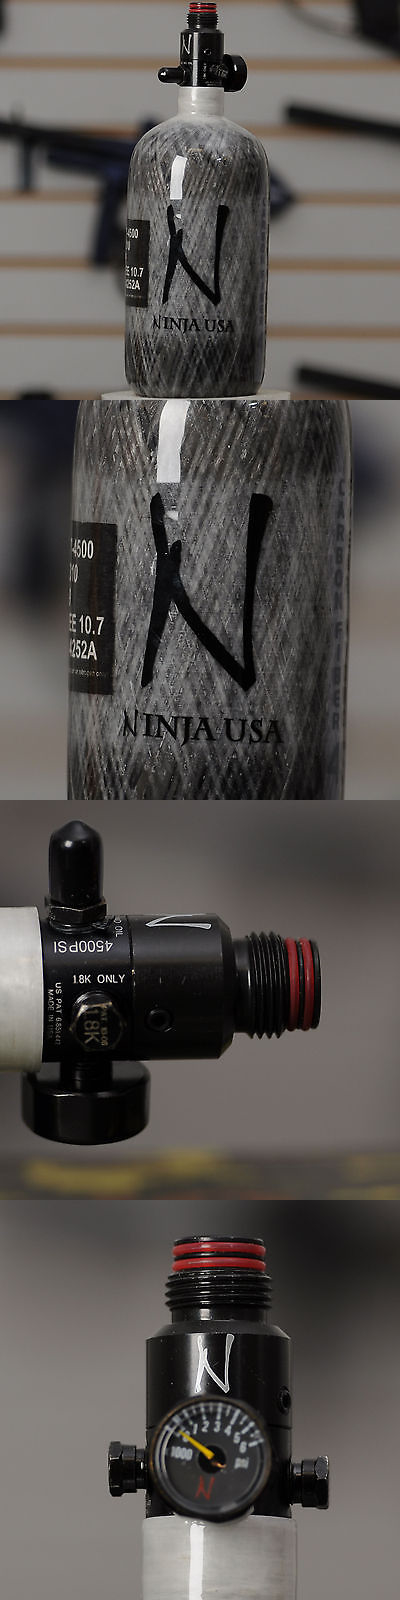 N2 Tanks and Accessories 36287: New Ninja Grey Ghost Carbon Fiber Hpa Air Tank W/ Adjustable Regulator - 45/4500 -> BUY IT NOW ONLY: $155.95 on eBay!